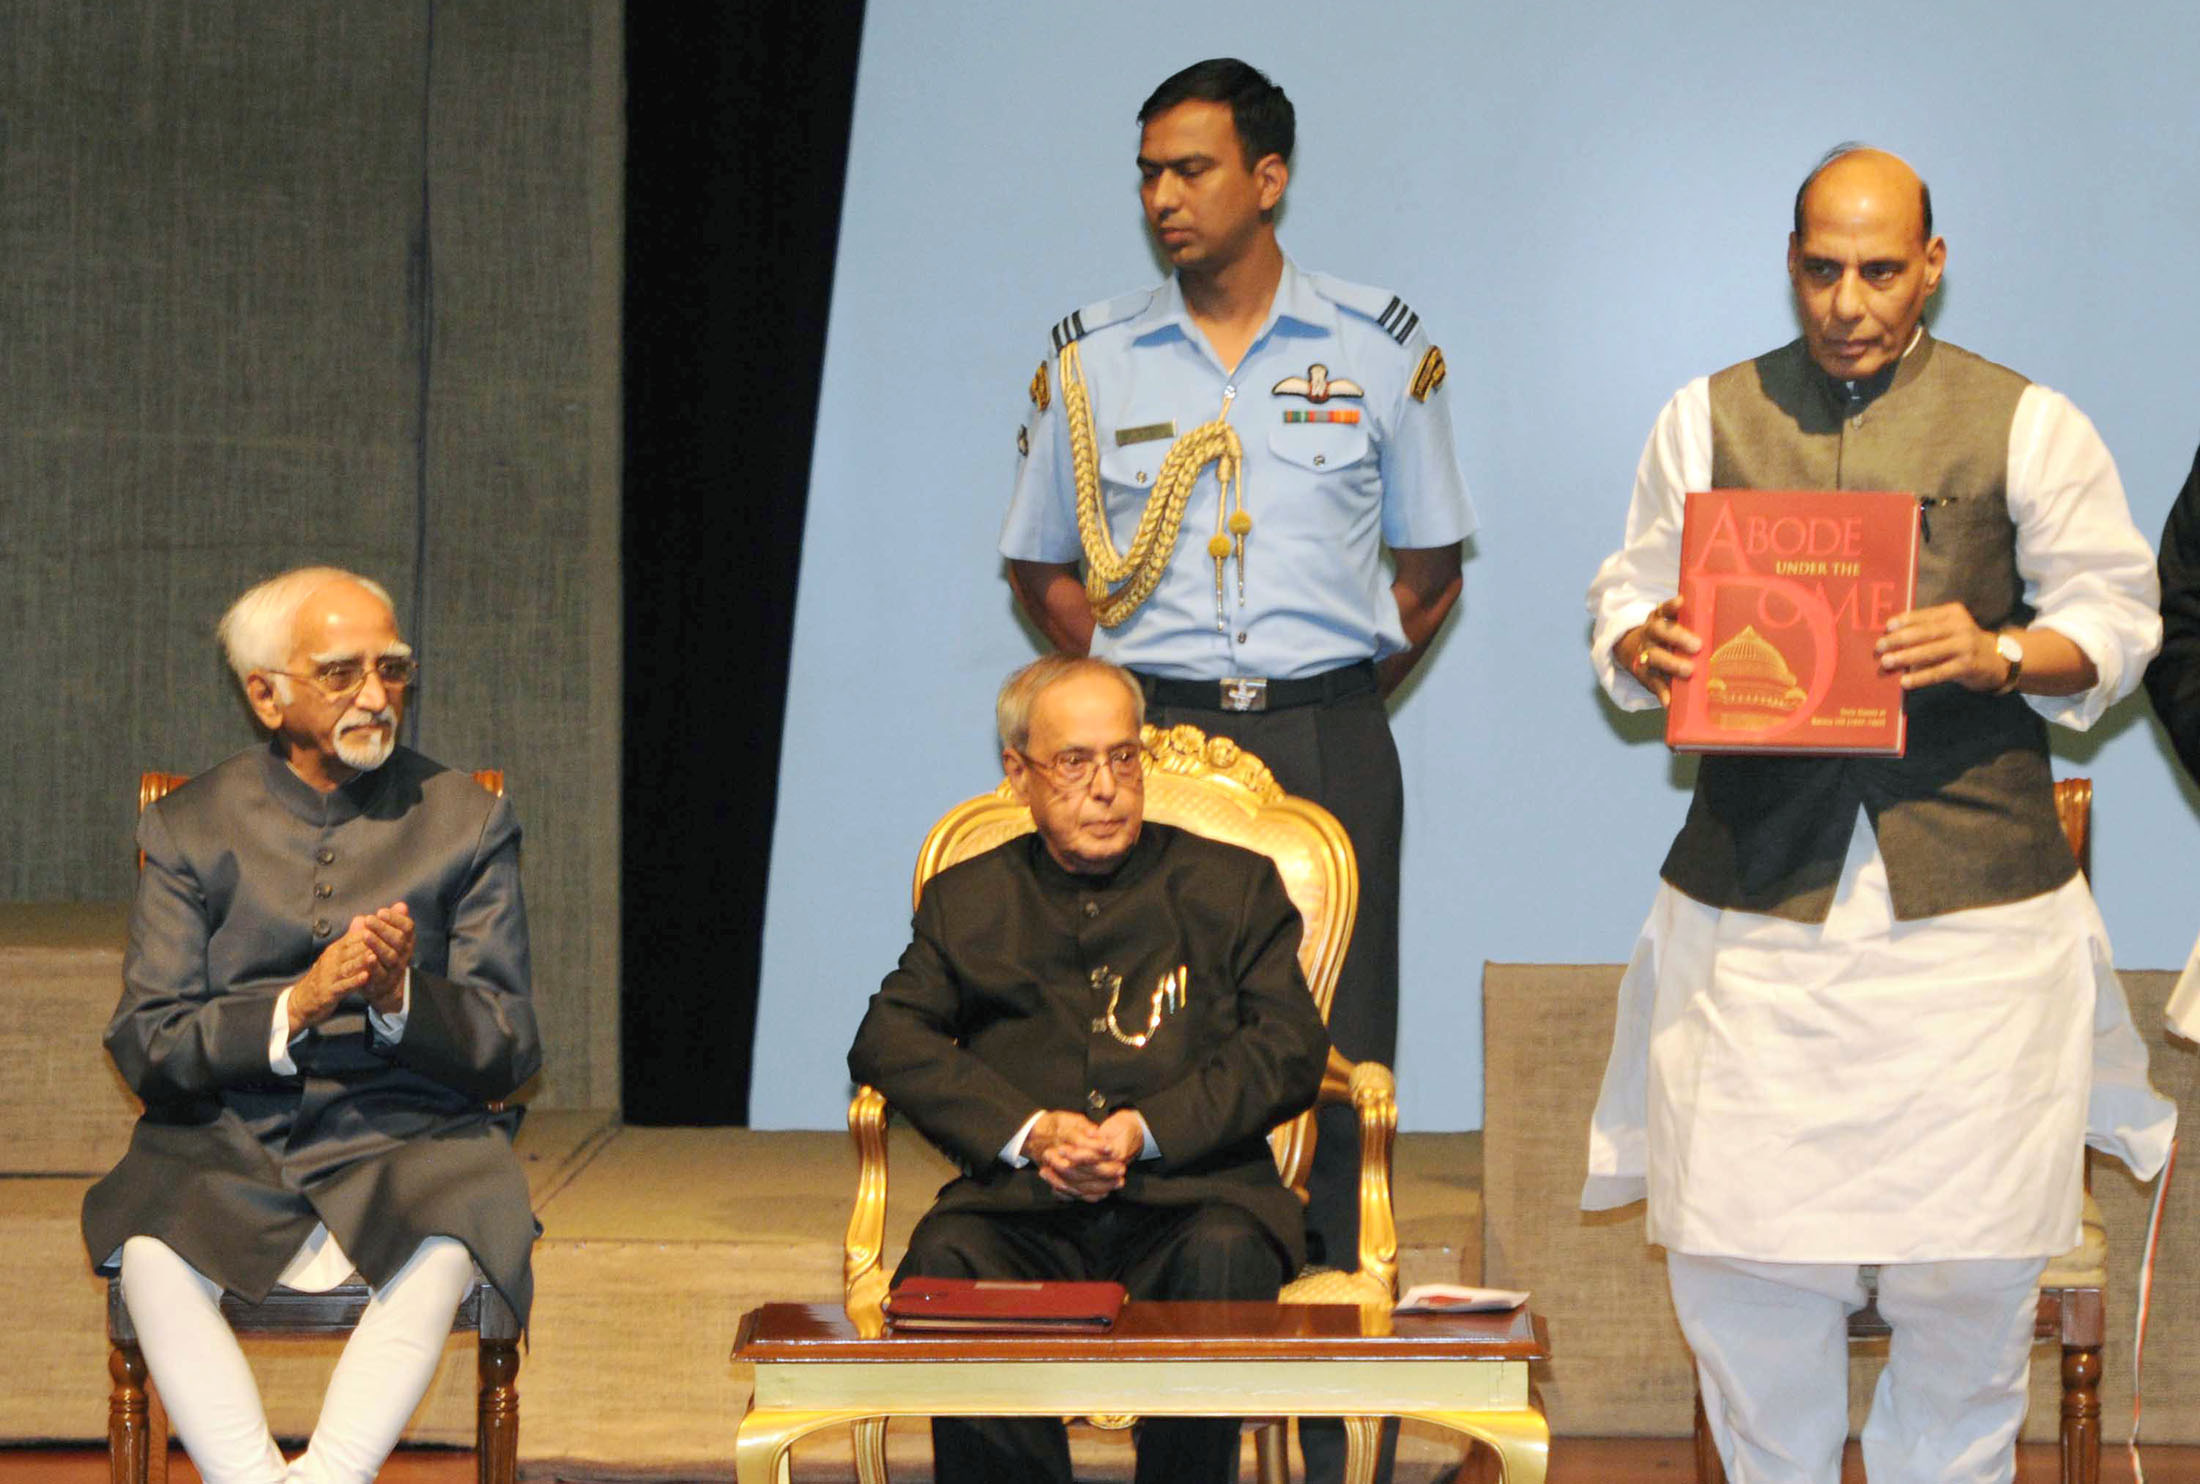 """The President, Shri Pranab Mukherjee, the Vice President, Shri Mohd. Hamid Ansari and the Union Home Minister, Shri Rajnath Singh, during the release of the book titled """"Abode under the Dome"""", at Rashtrapati Bhavan, in New Delhi on July 24, 2015."""